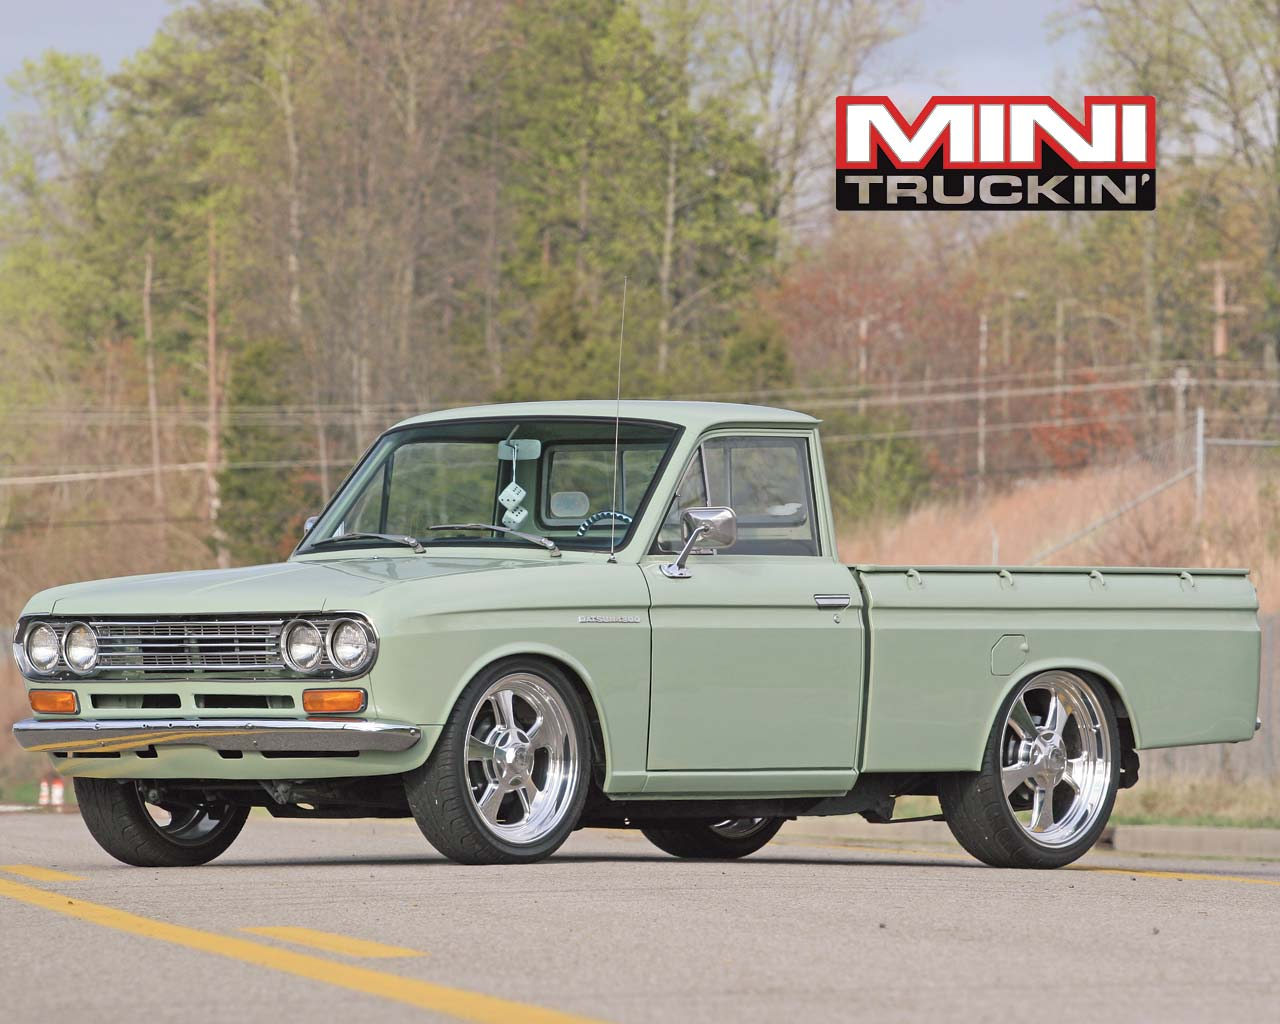 Datsun pickup photo - 1